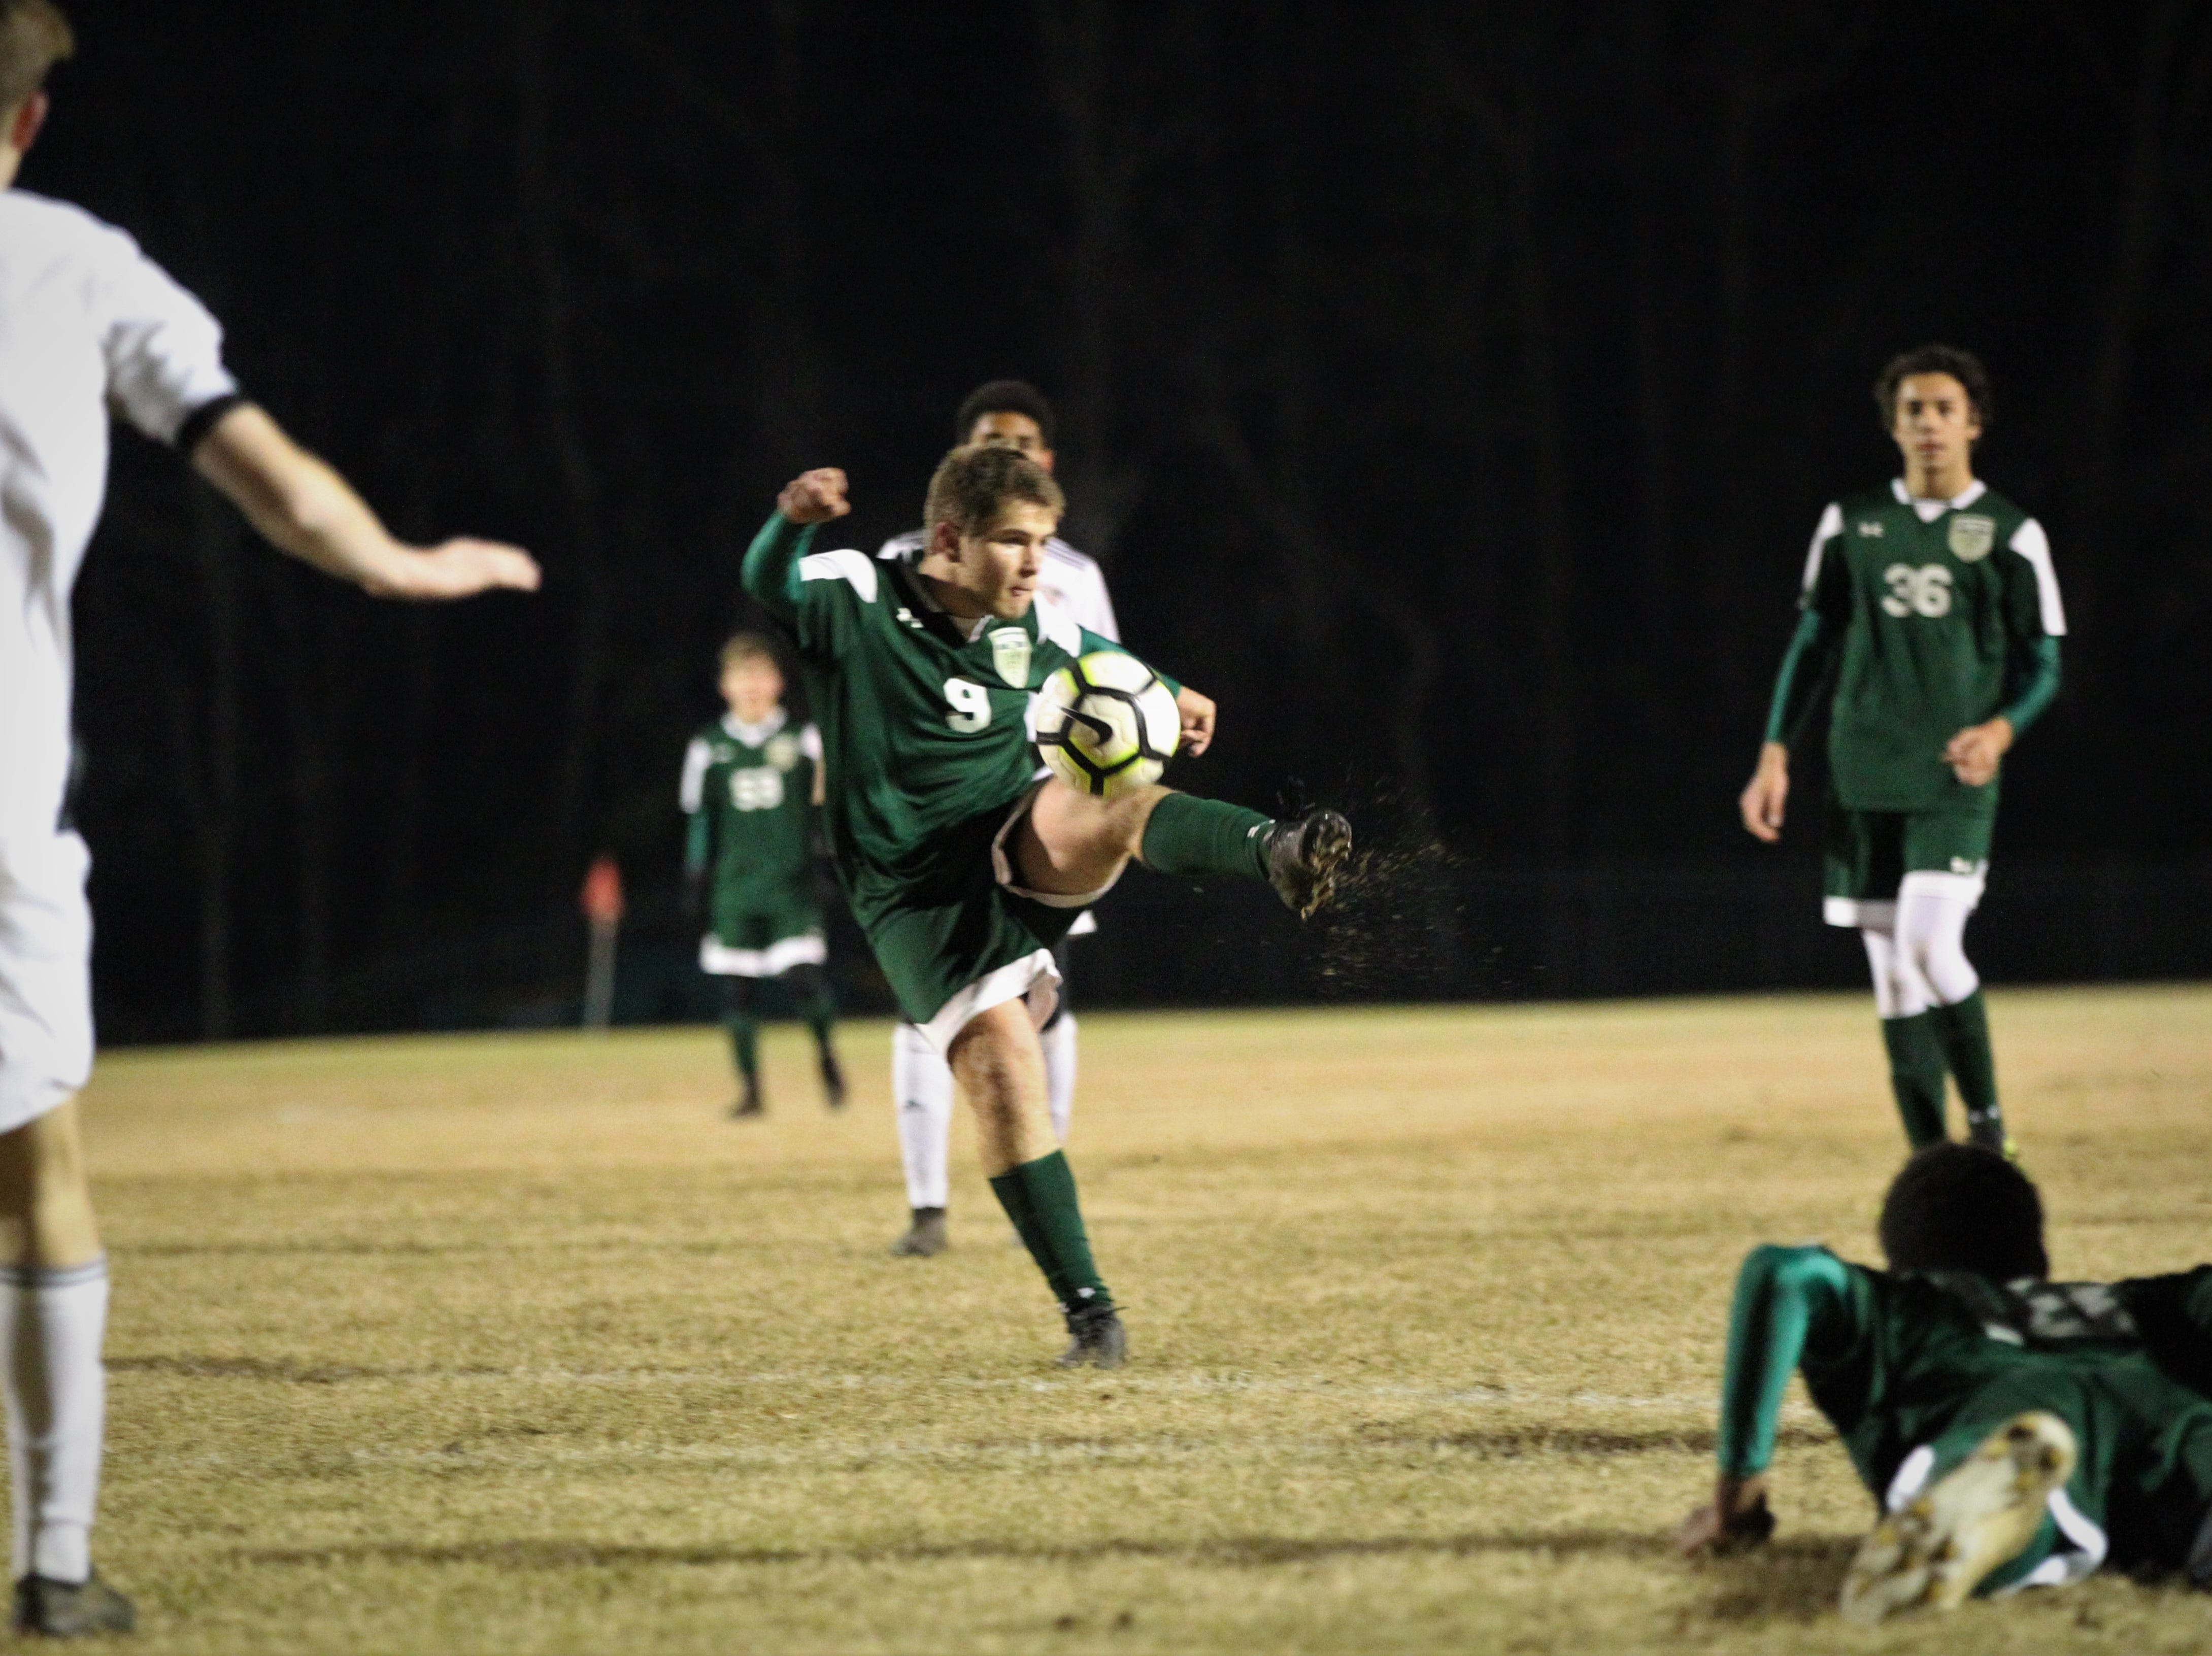 Lincoln's Sean Yearwood rips a shot that gets saved as Chiles' boys soccer team beat Lincoln 1-0 in a District 2-4A semifinal on Jan. 30, 2019.